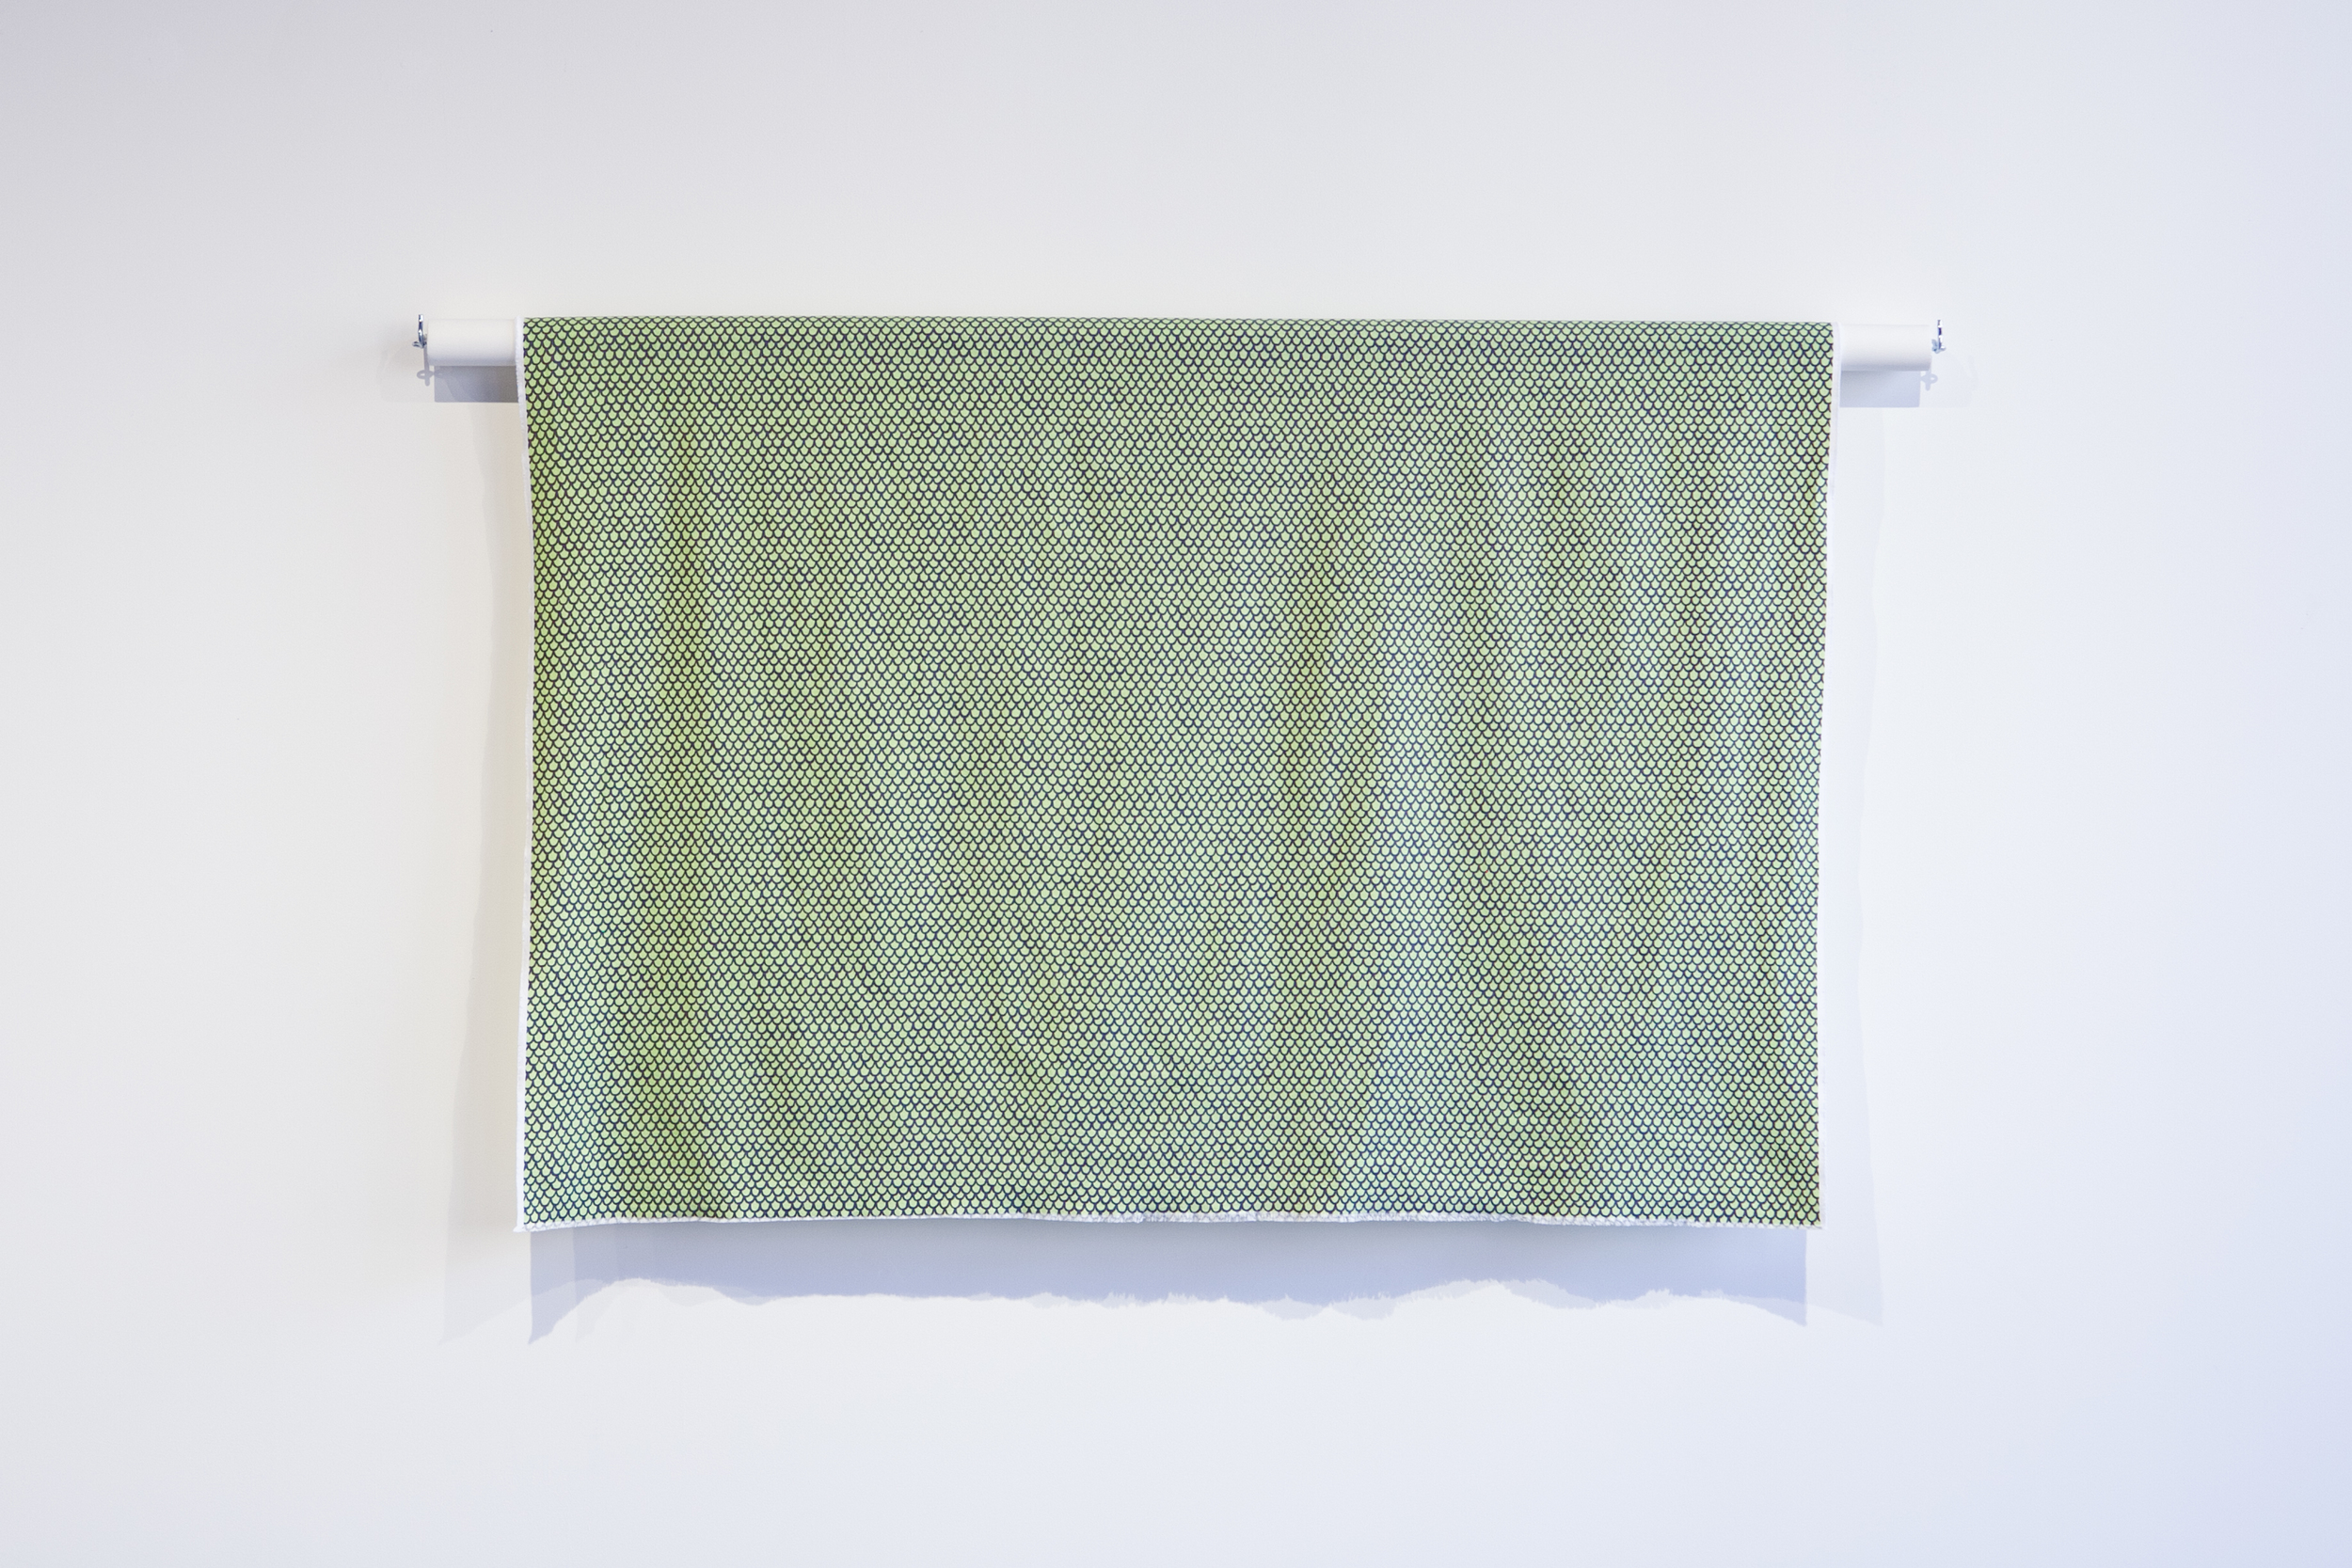 Scales Fabric , 2015,mixed media,91 x 122 x 5 cm (36 x 48 x 2 in) variable